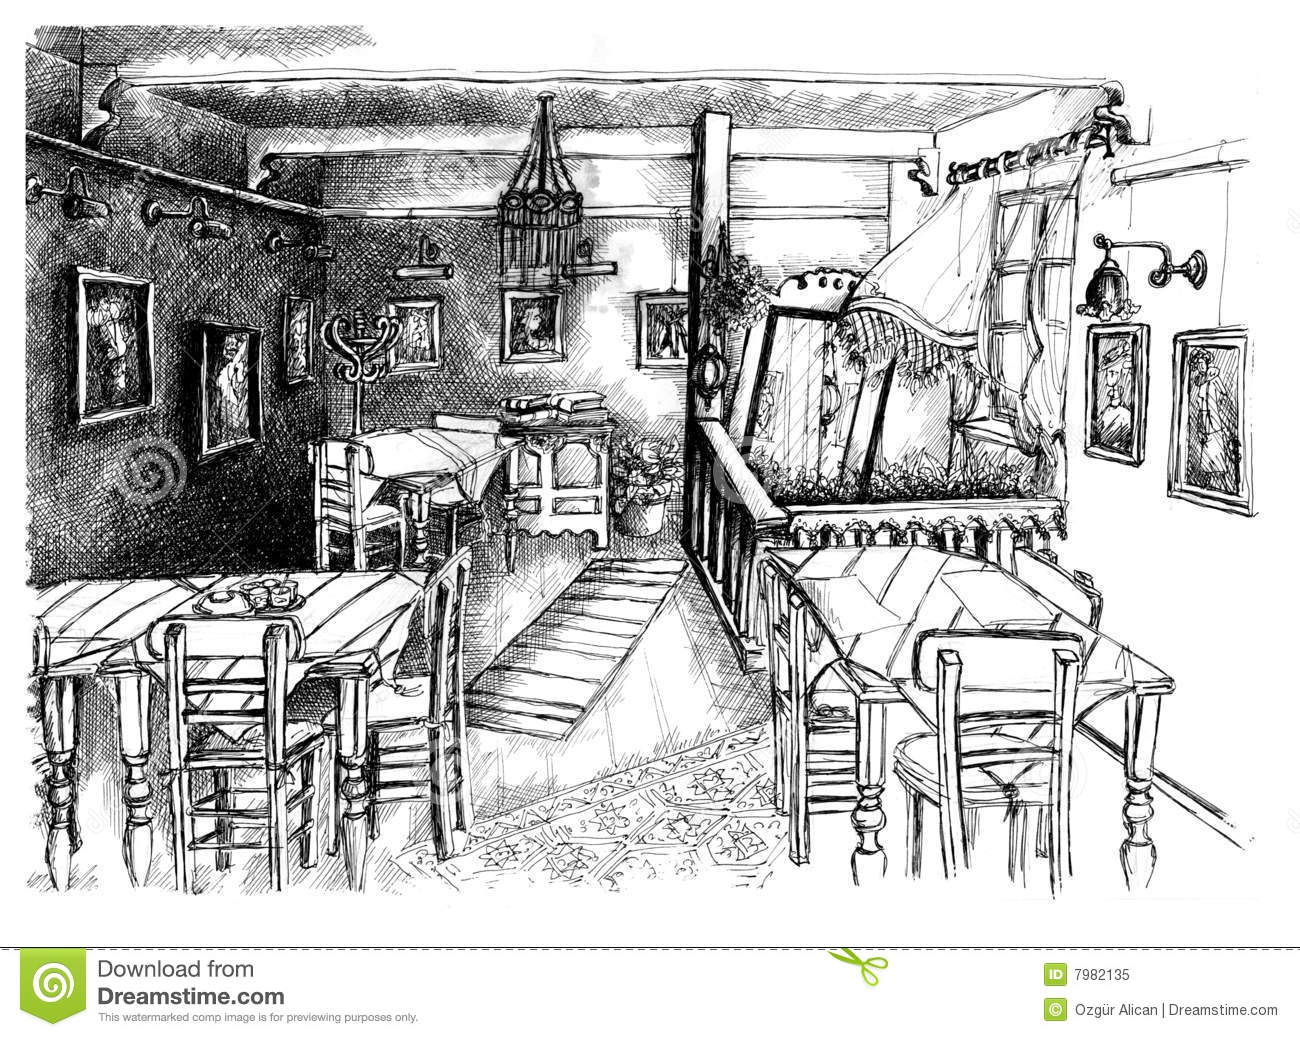 Cafe drawing interior - Sketch Of Cafe Interior